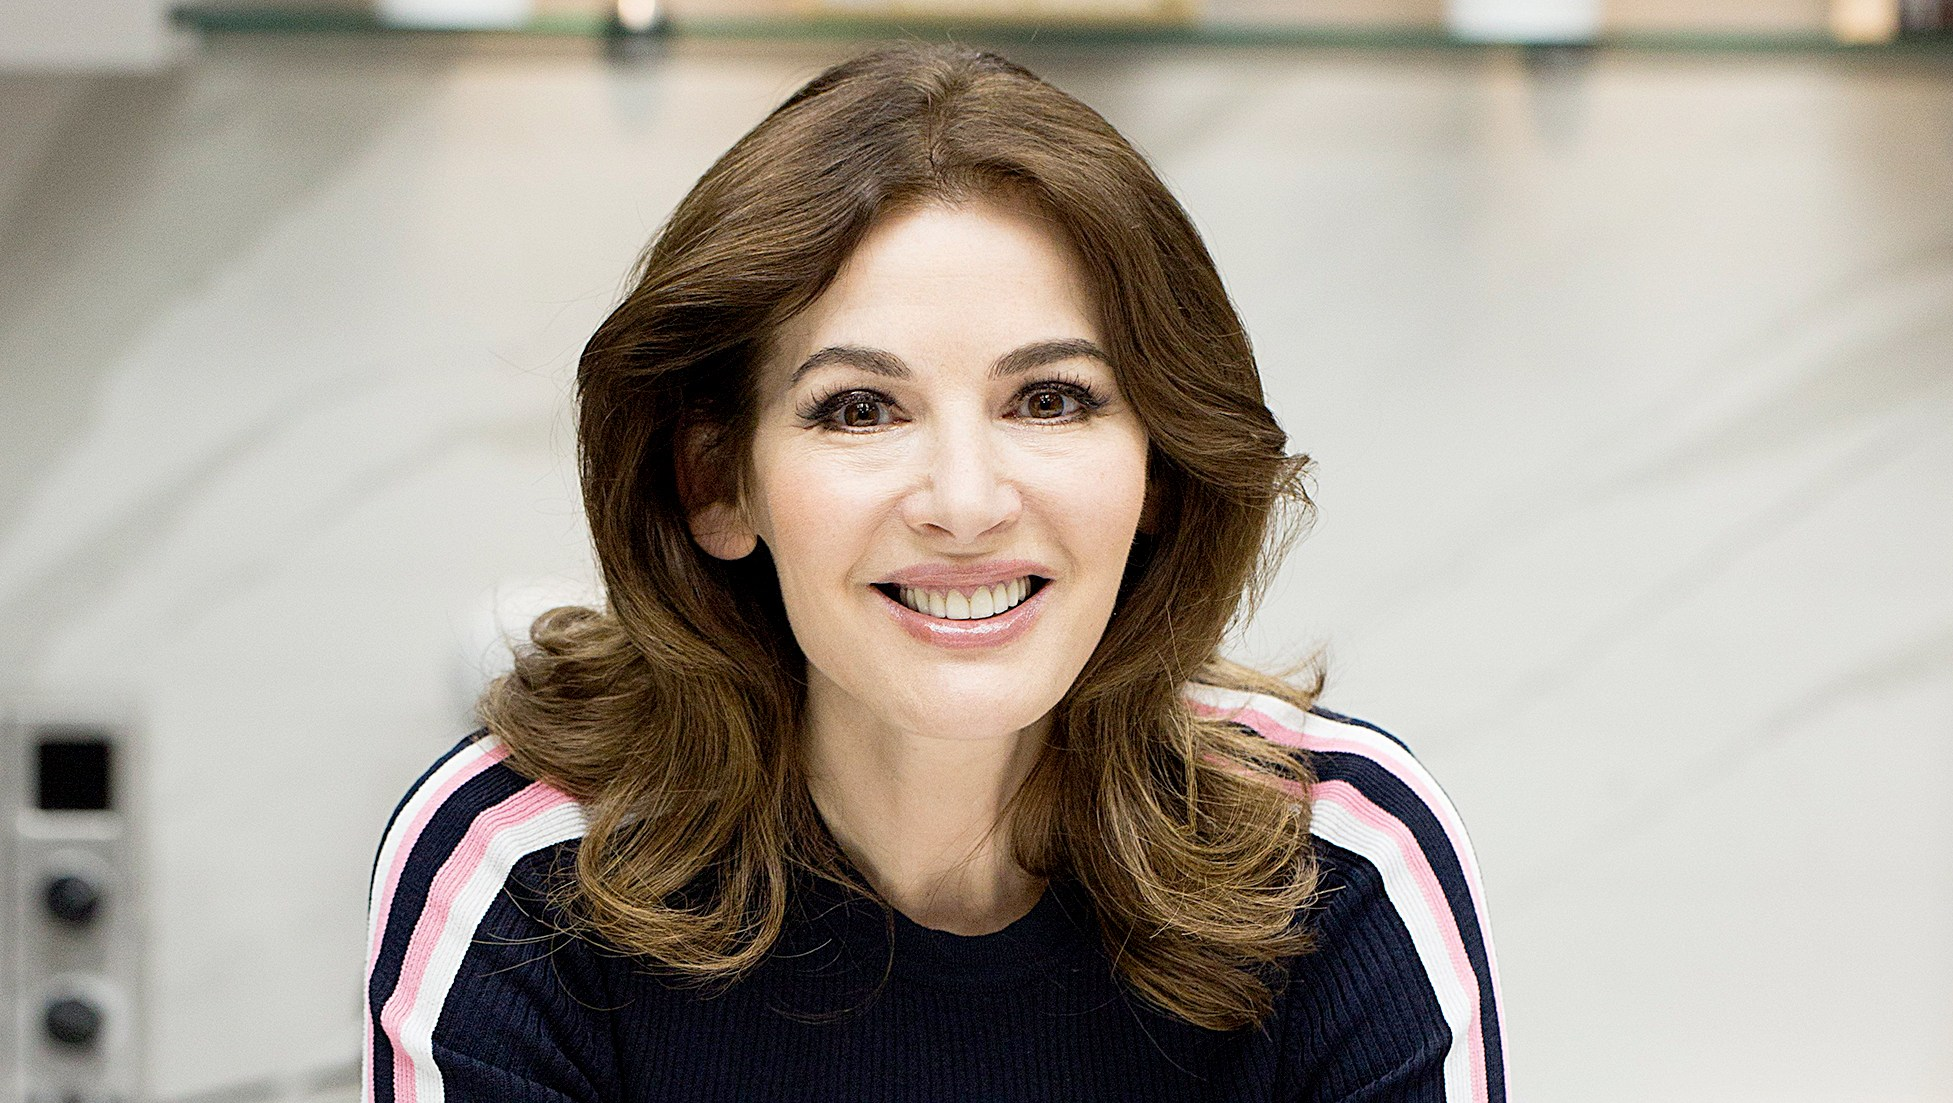 Nigella-Lawson-Body-Positive-Tweet